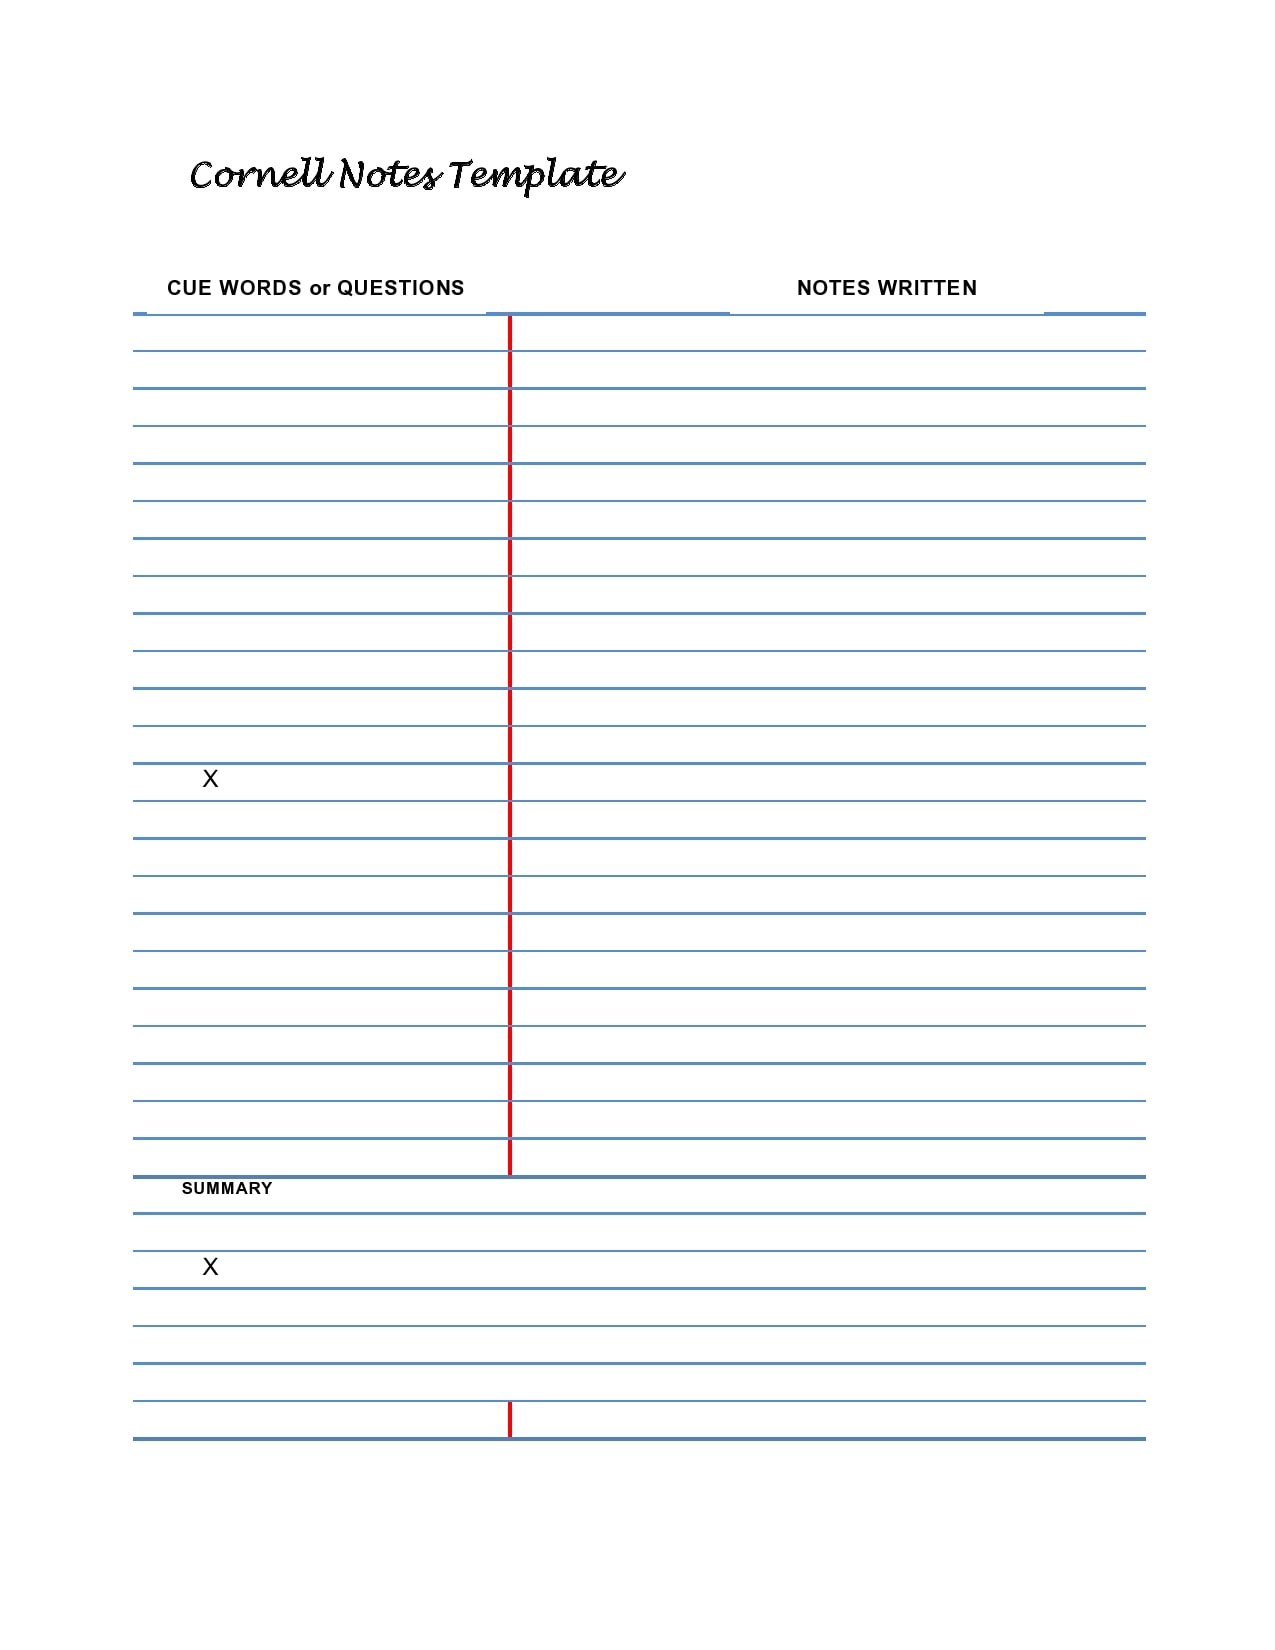 cornell notes template 03